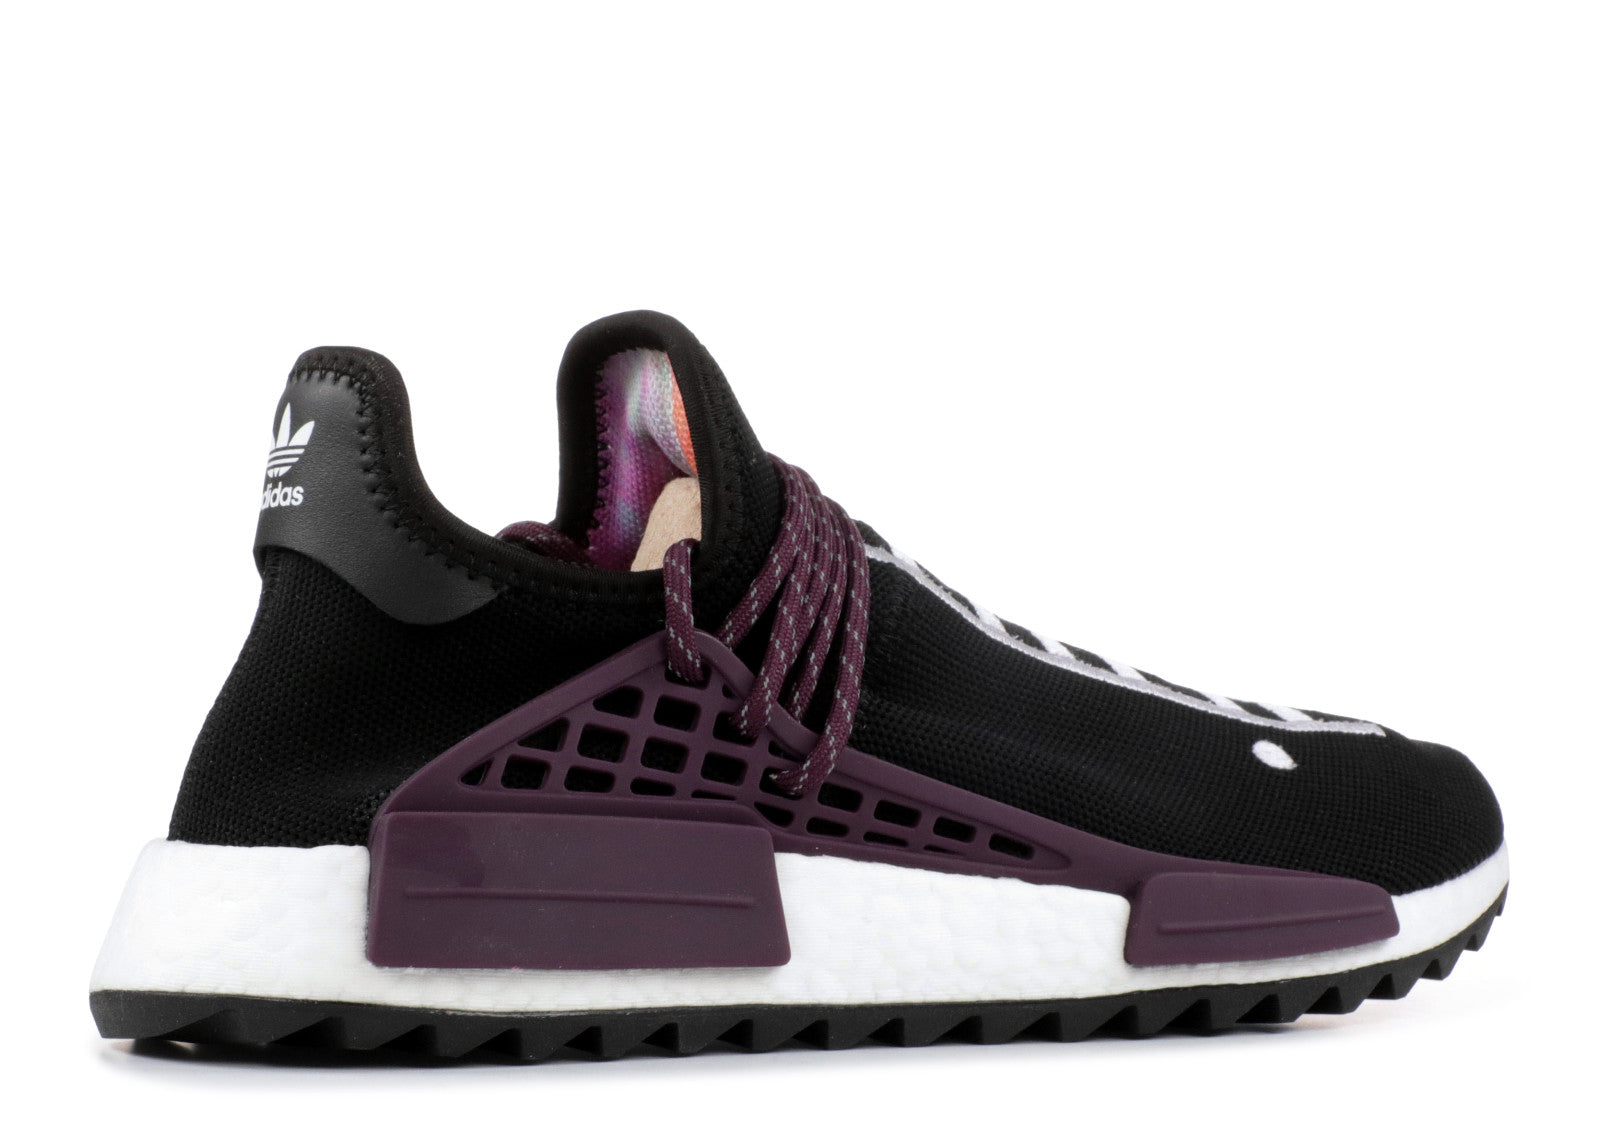 Pharrell Williams X Adidas Human Race NMD 'Black/Purple'